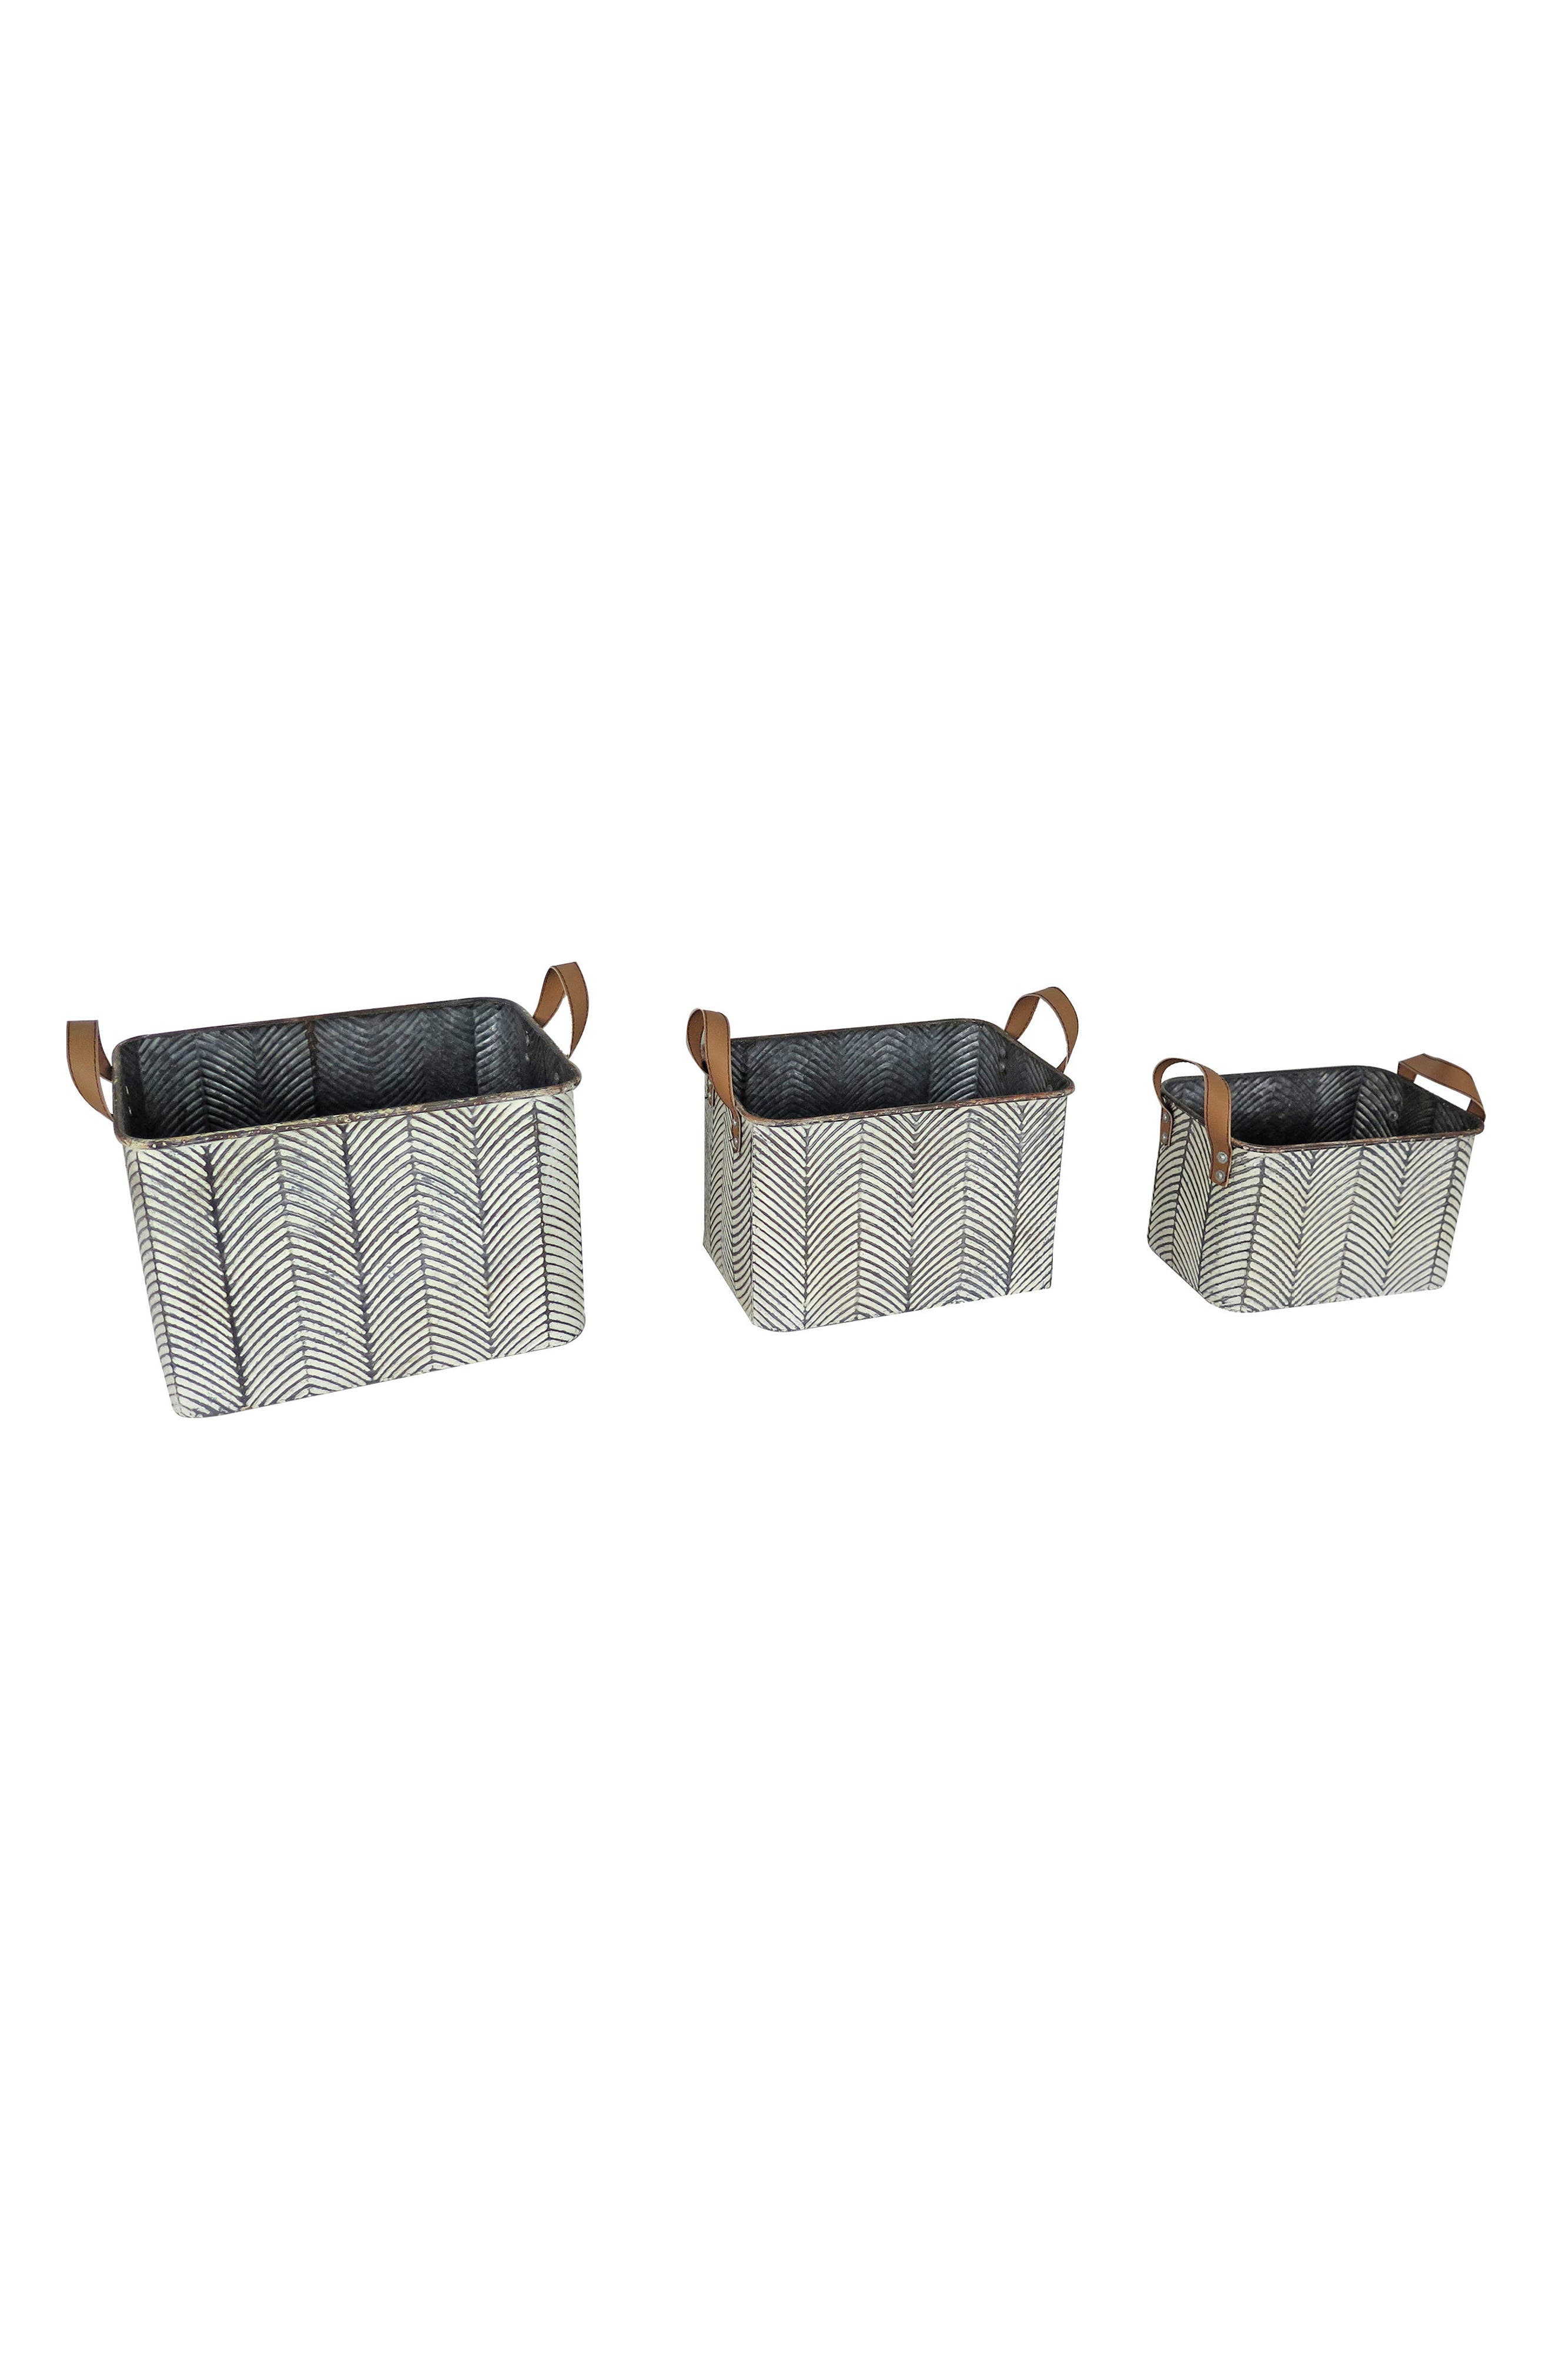 Main Image - Foreside Braxton Set of 3 Baskets